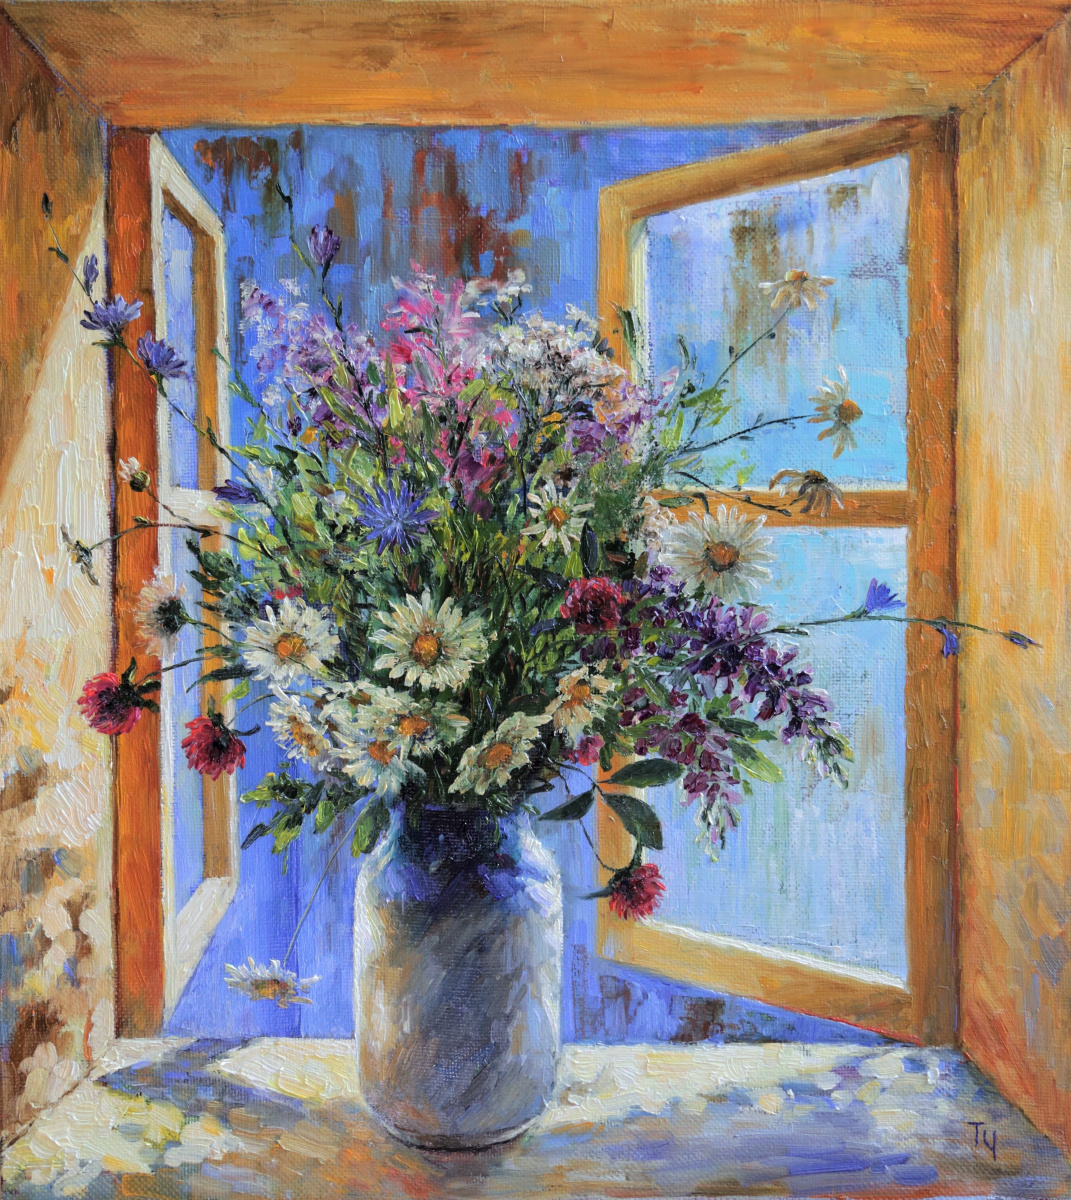 Tatyana Chepkasova. Flowers against a blue roof